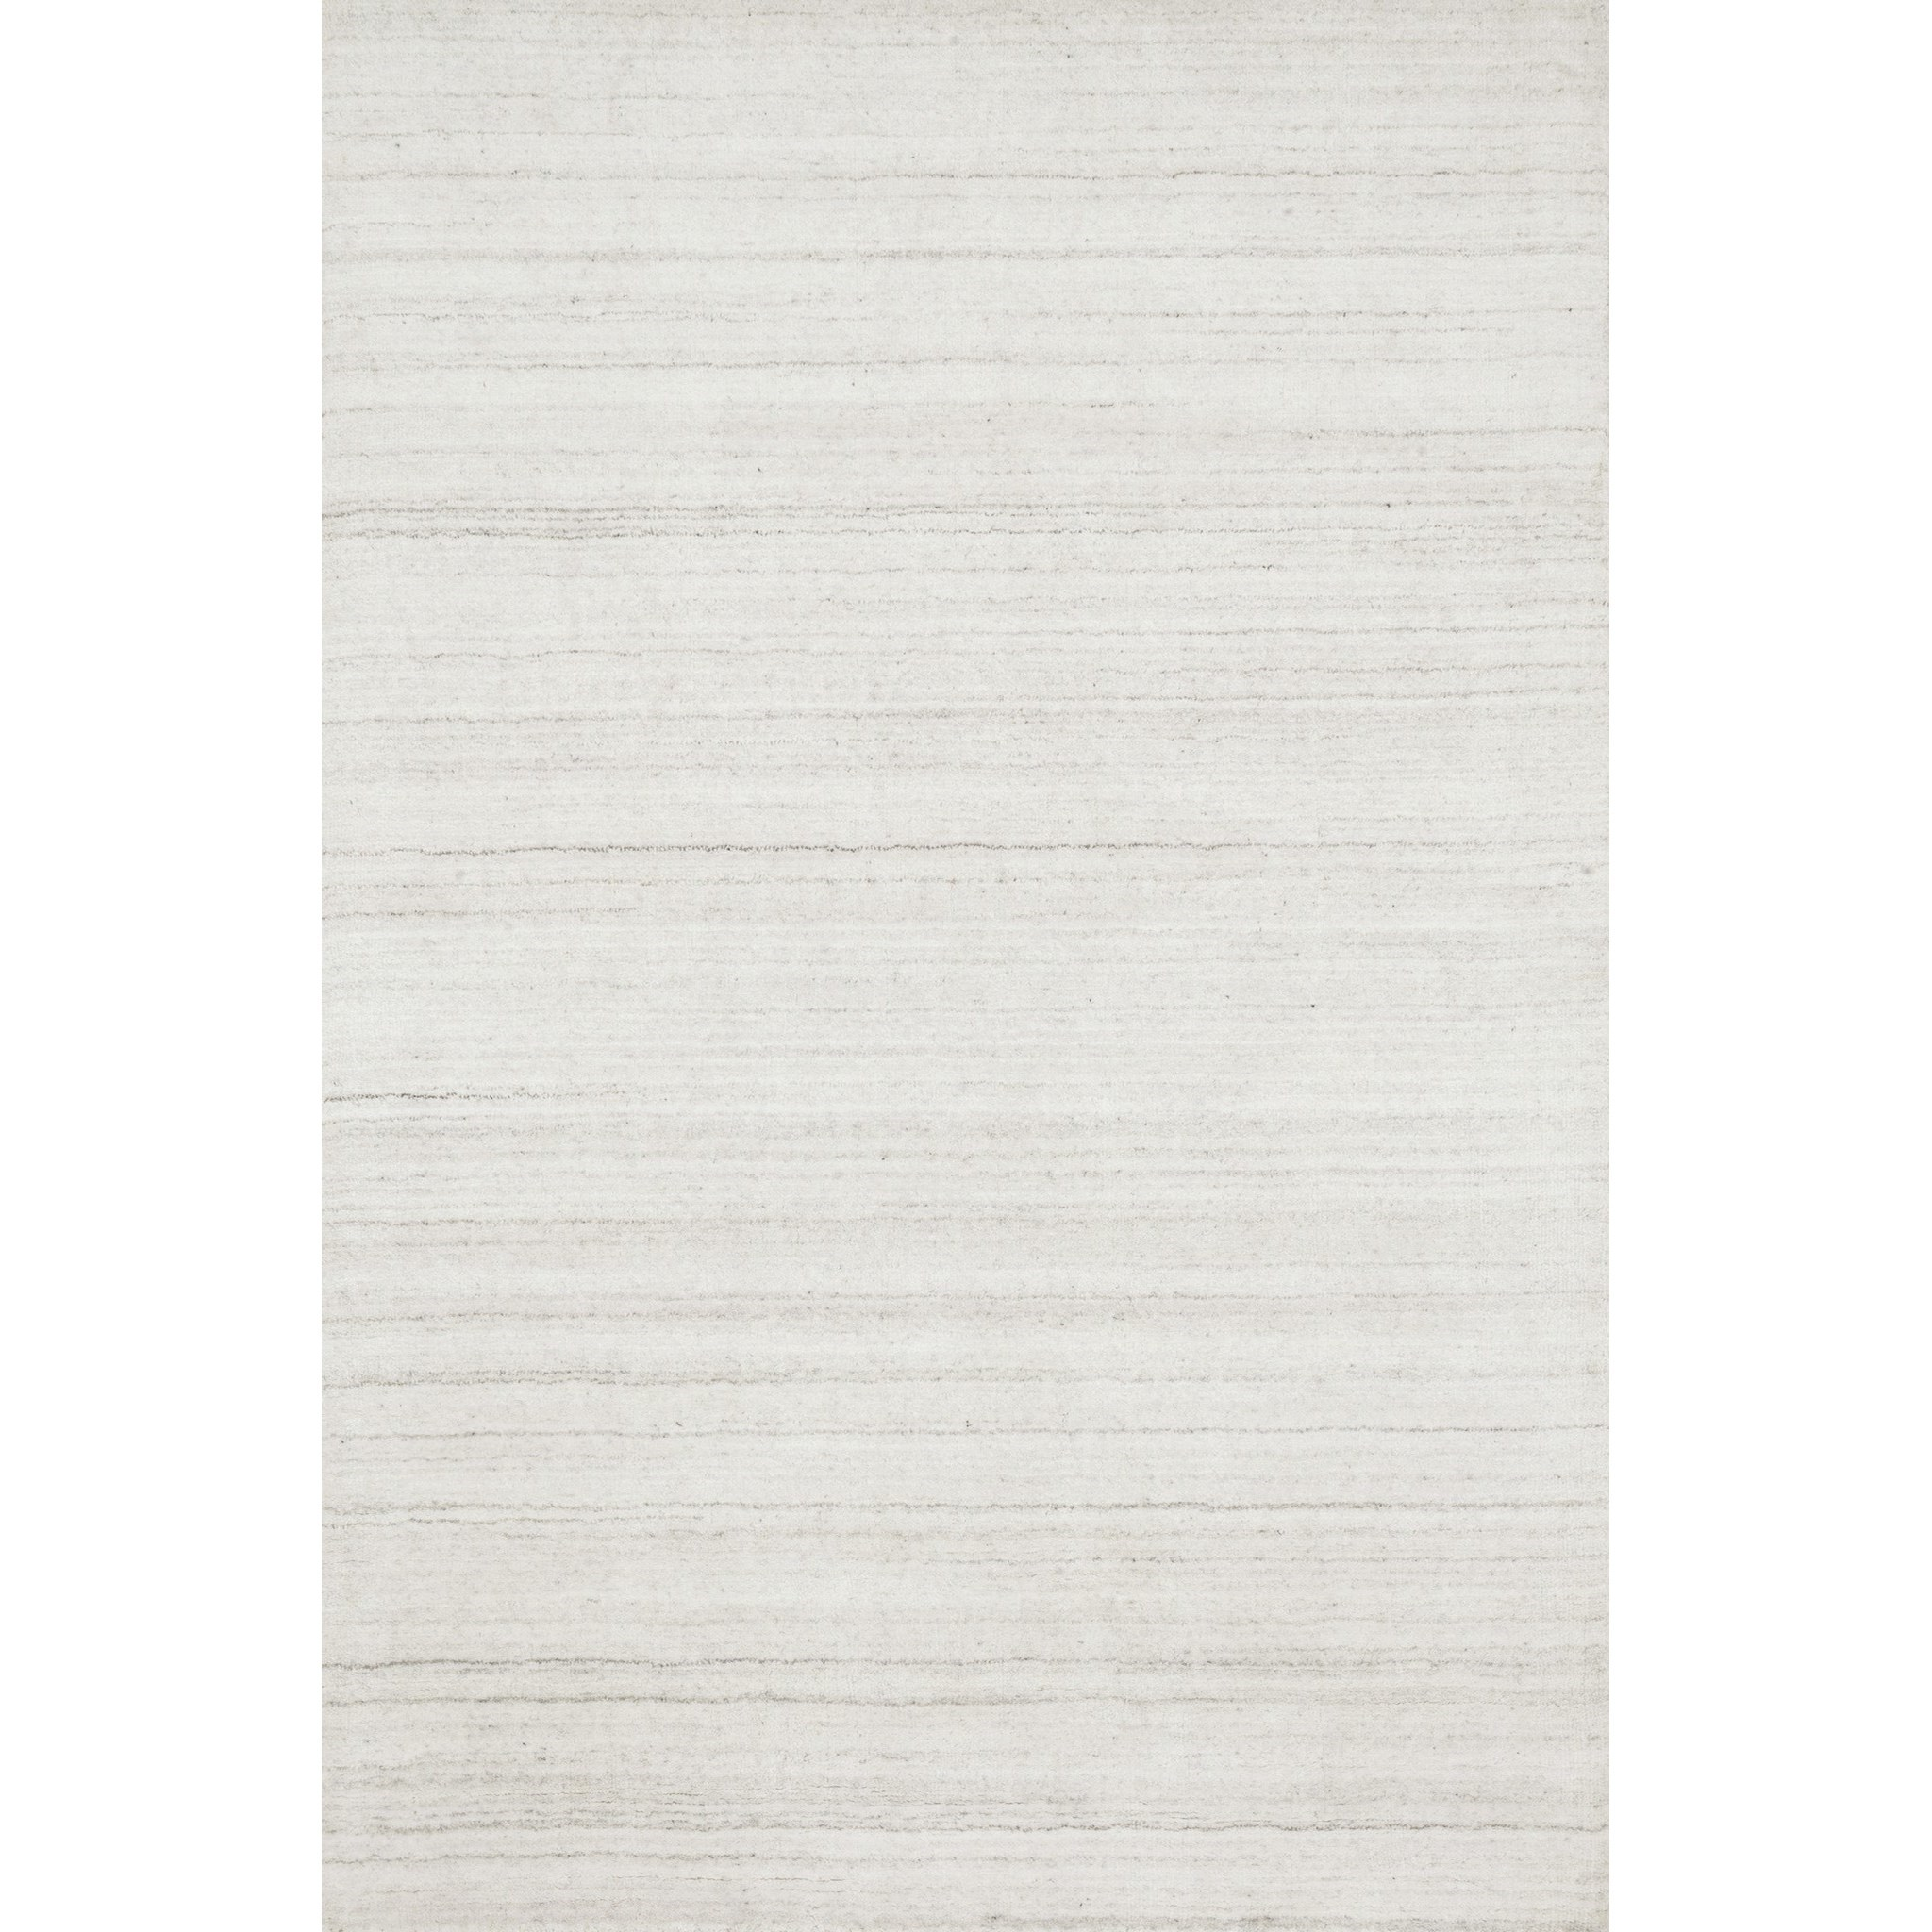 """Barkley 12'-0"""" x 15'-0"""" Area Rug by Loloi Rugs at Virginia Furniture Market"""